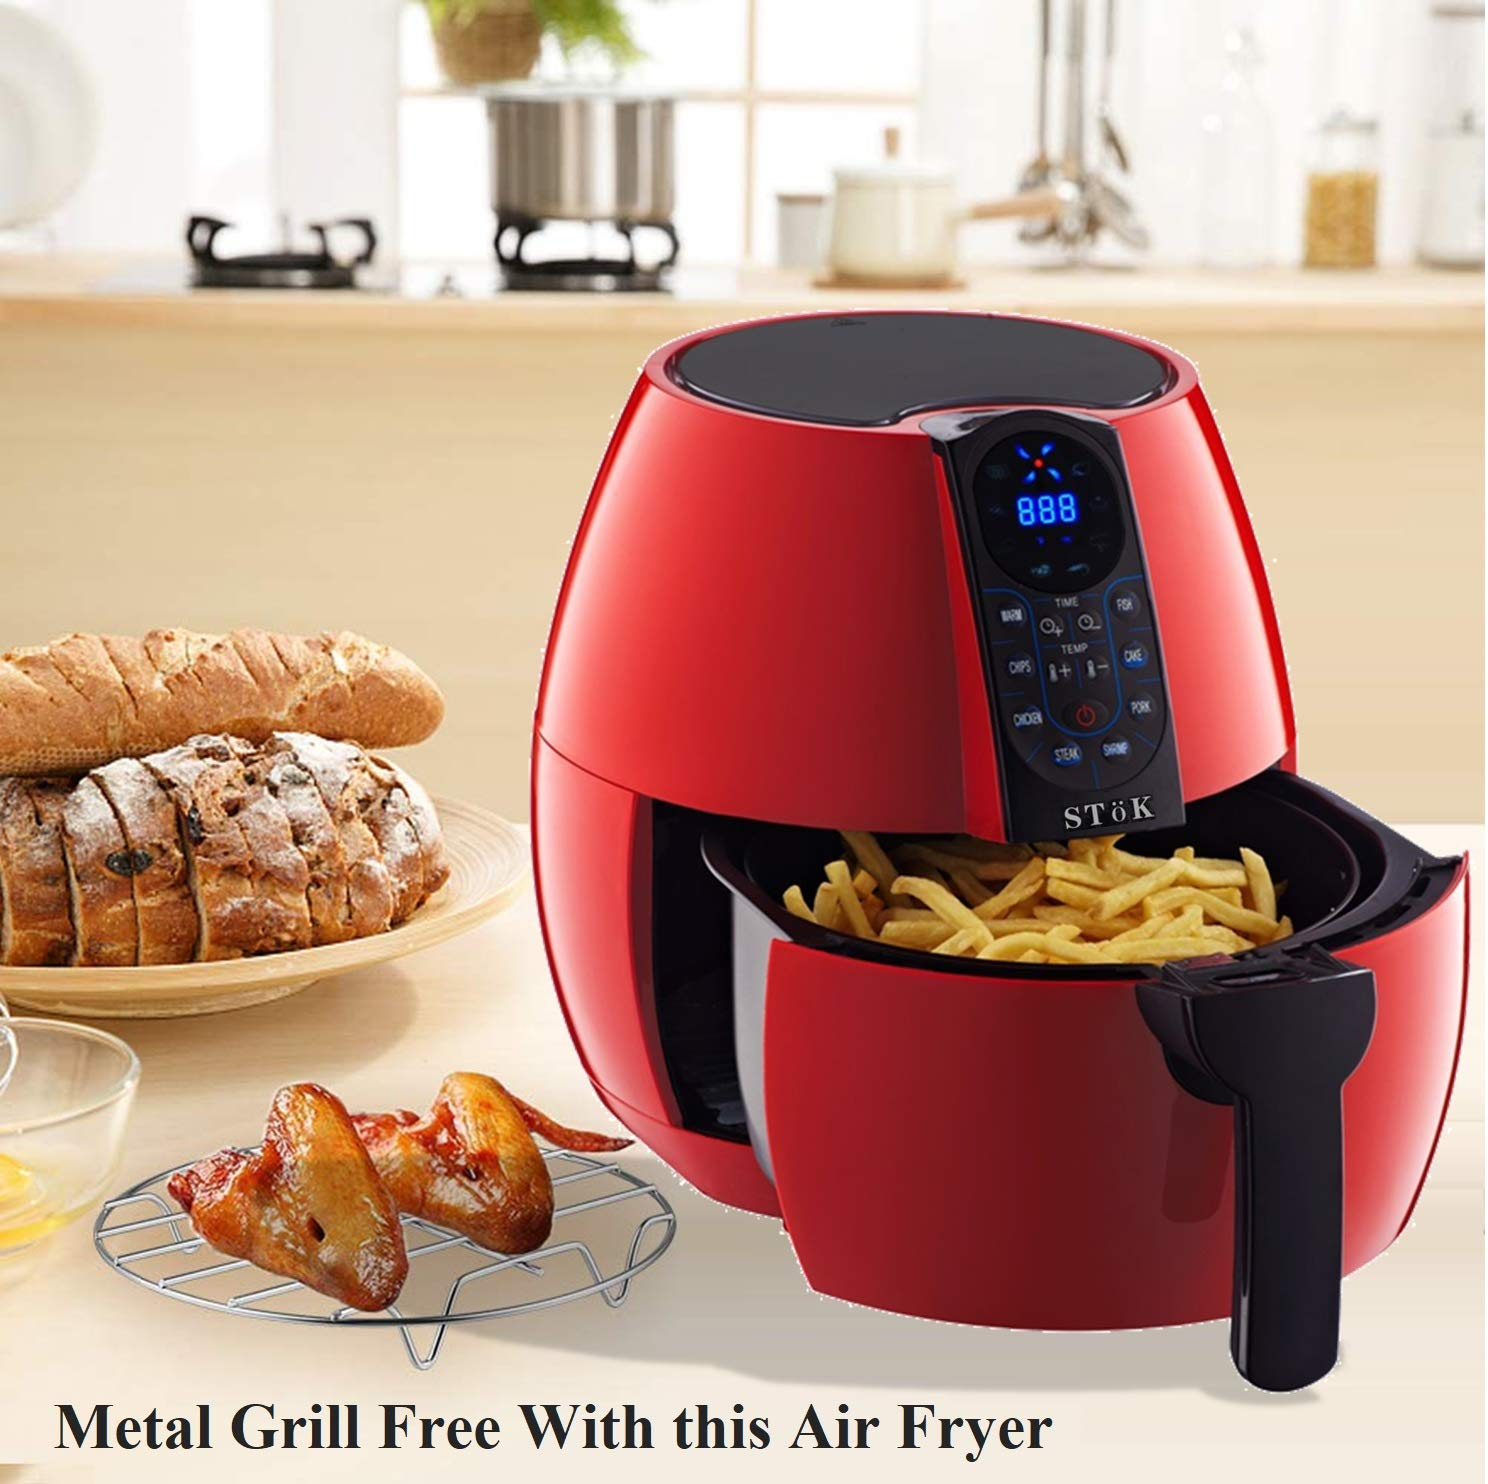 Stok air fryer review